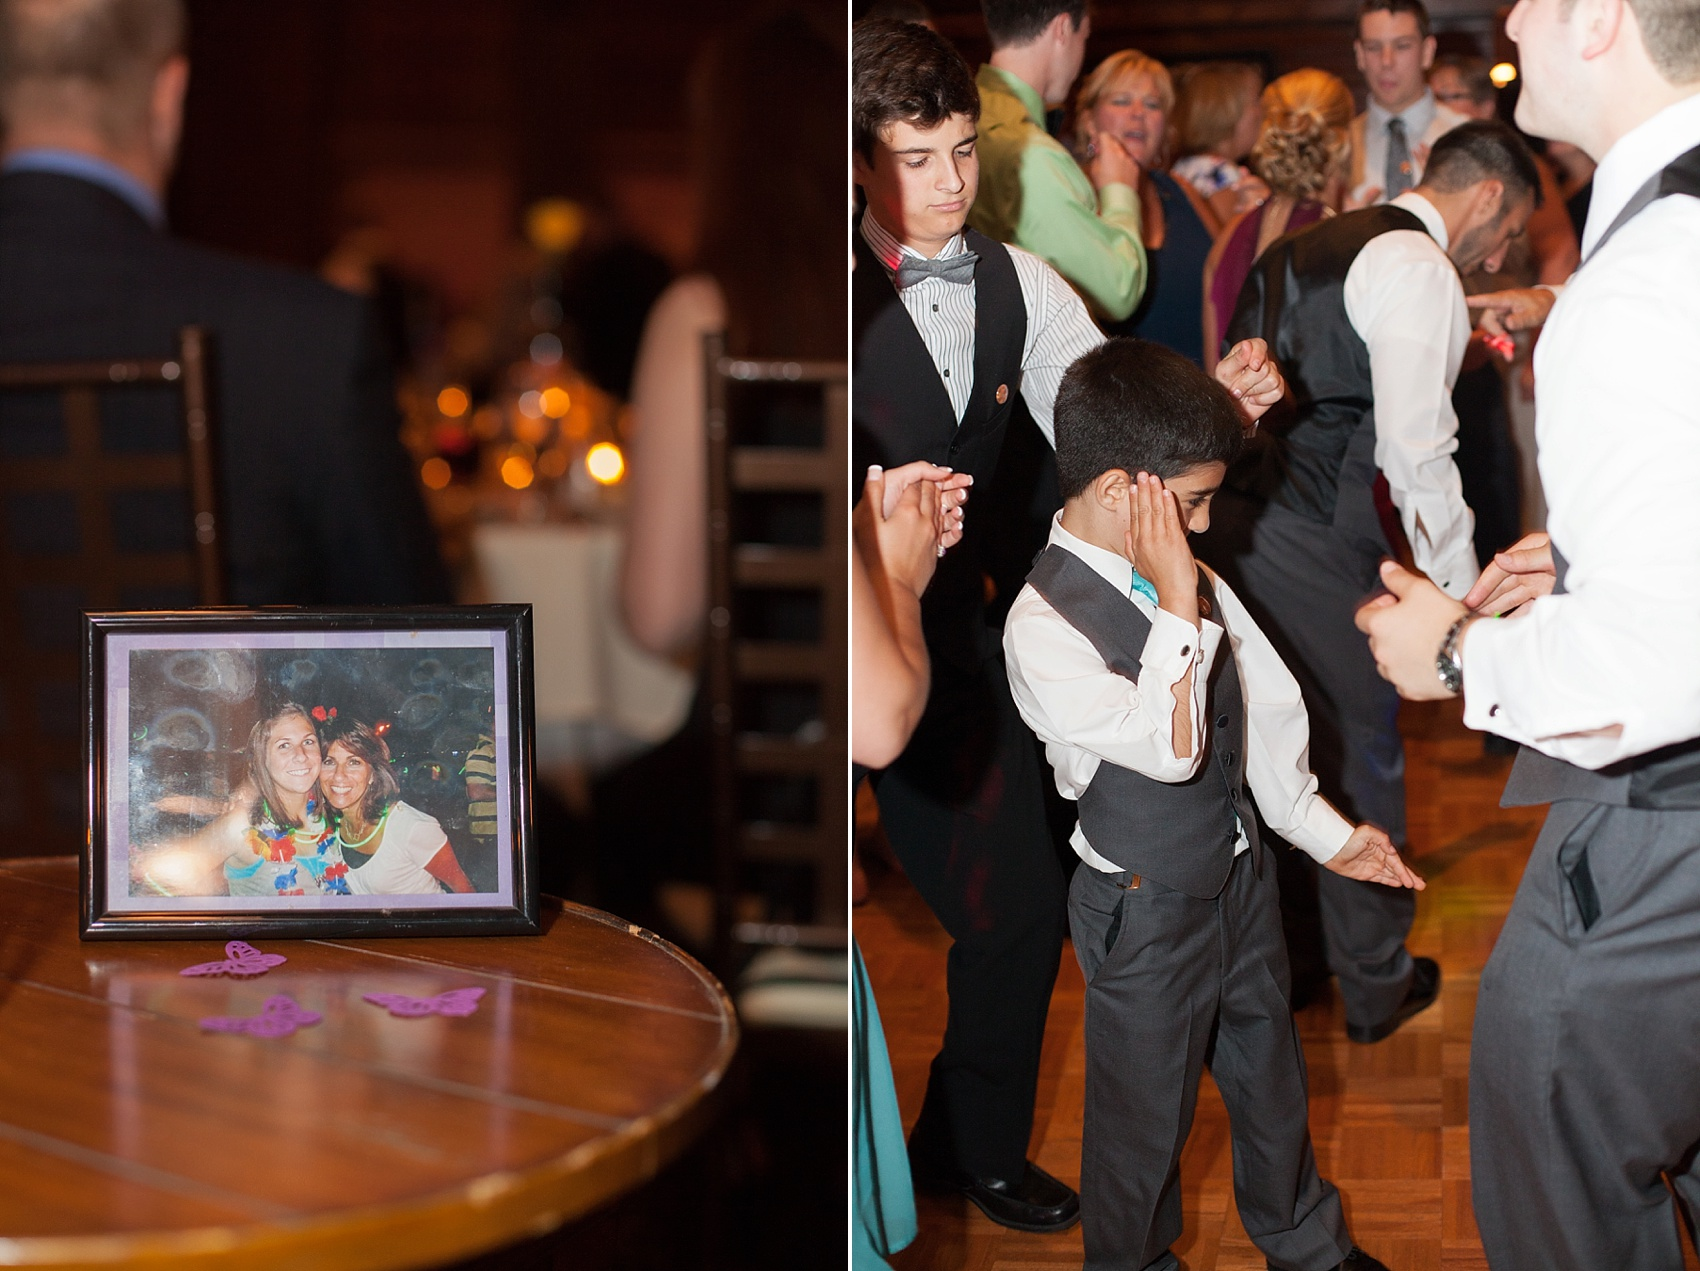 Rustic Hollow Brook Golf Club summer wedding photos in Cortlandt Manor, New York, by Mikkel Paige Photography.